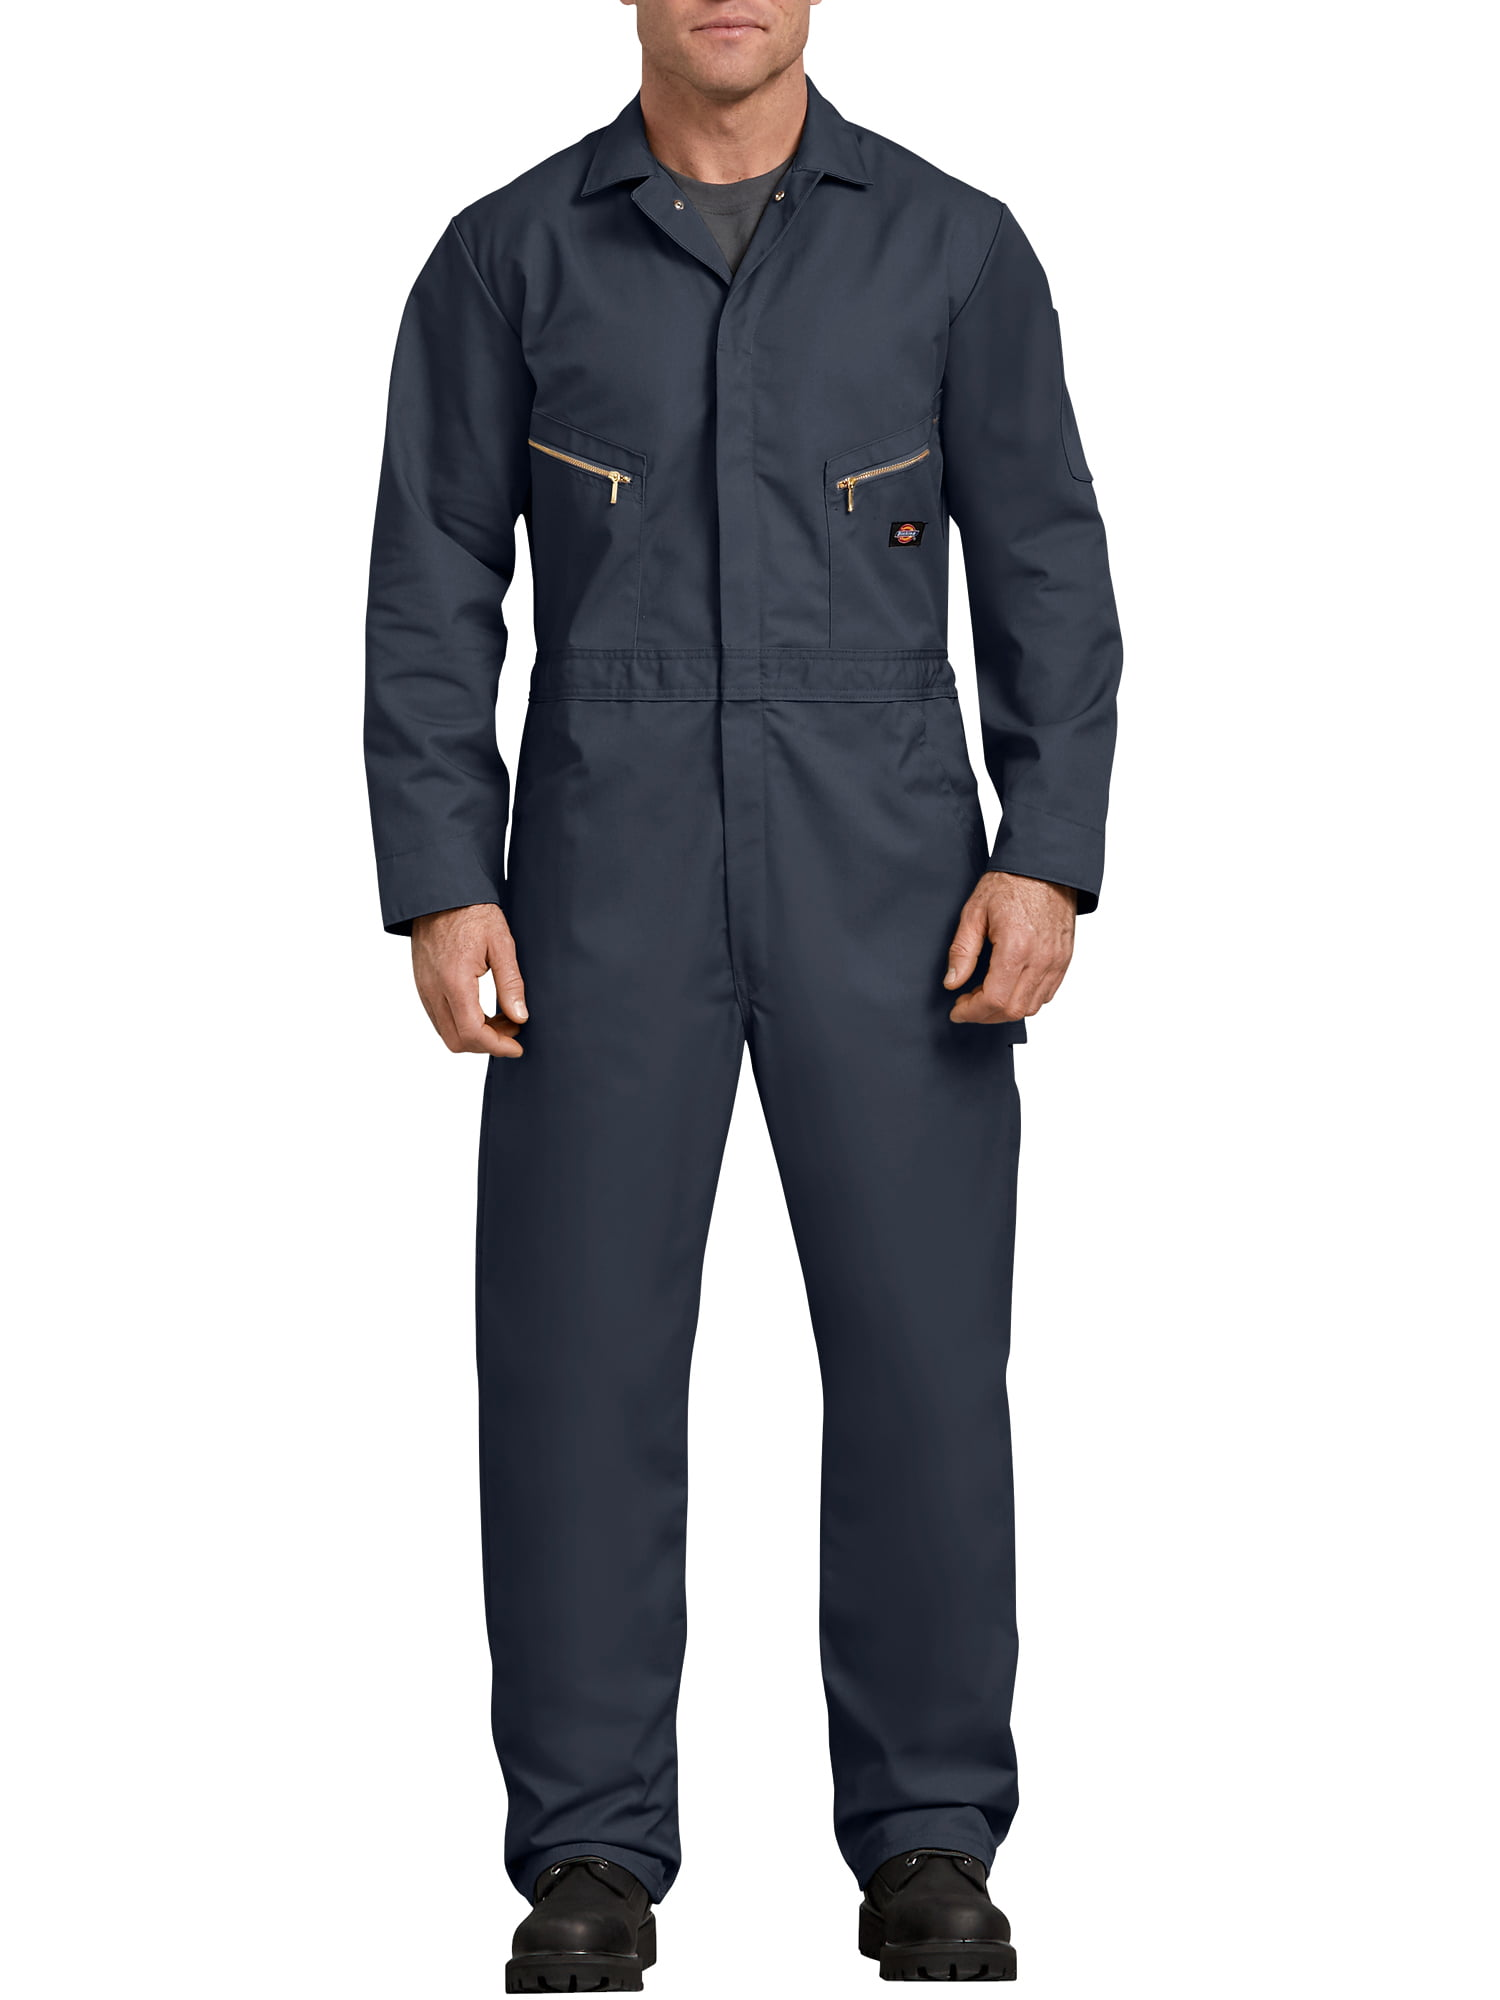 d31ca74b99a1 Dickies - Men s Long Sleeve Deluxe Blended Twill Coverall - Walmart.com